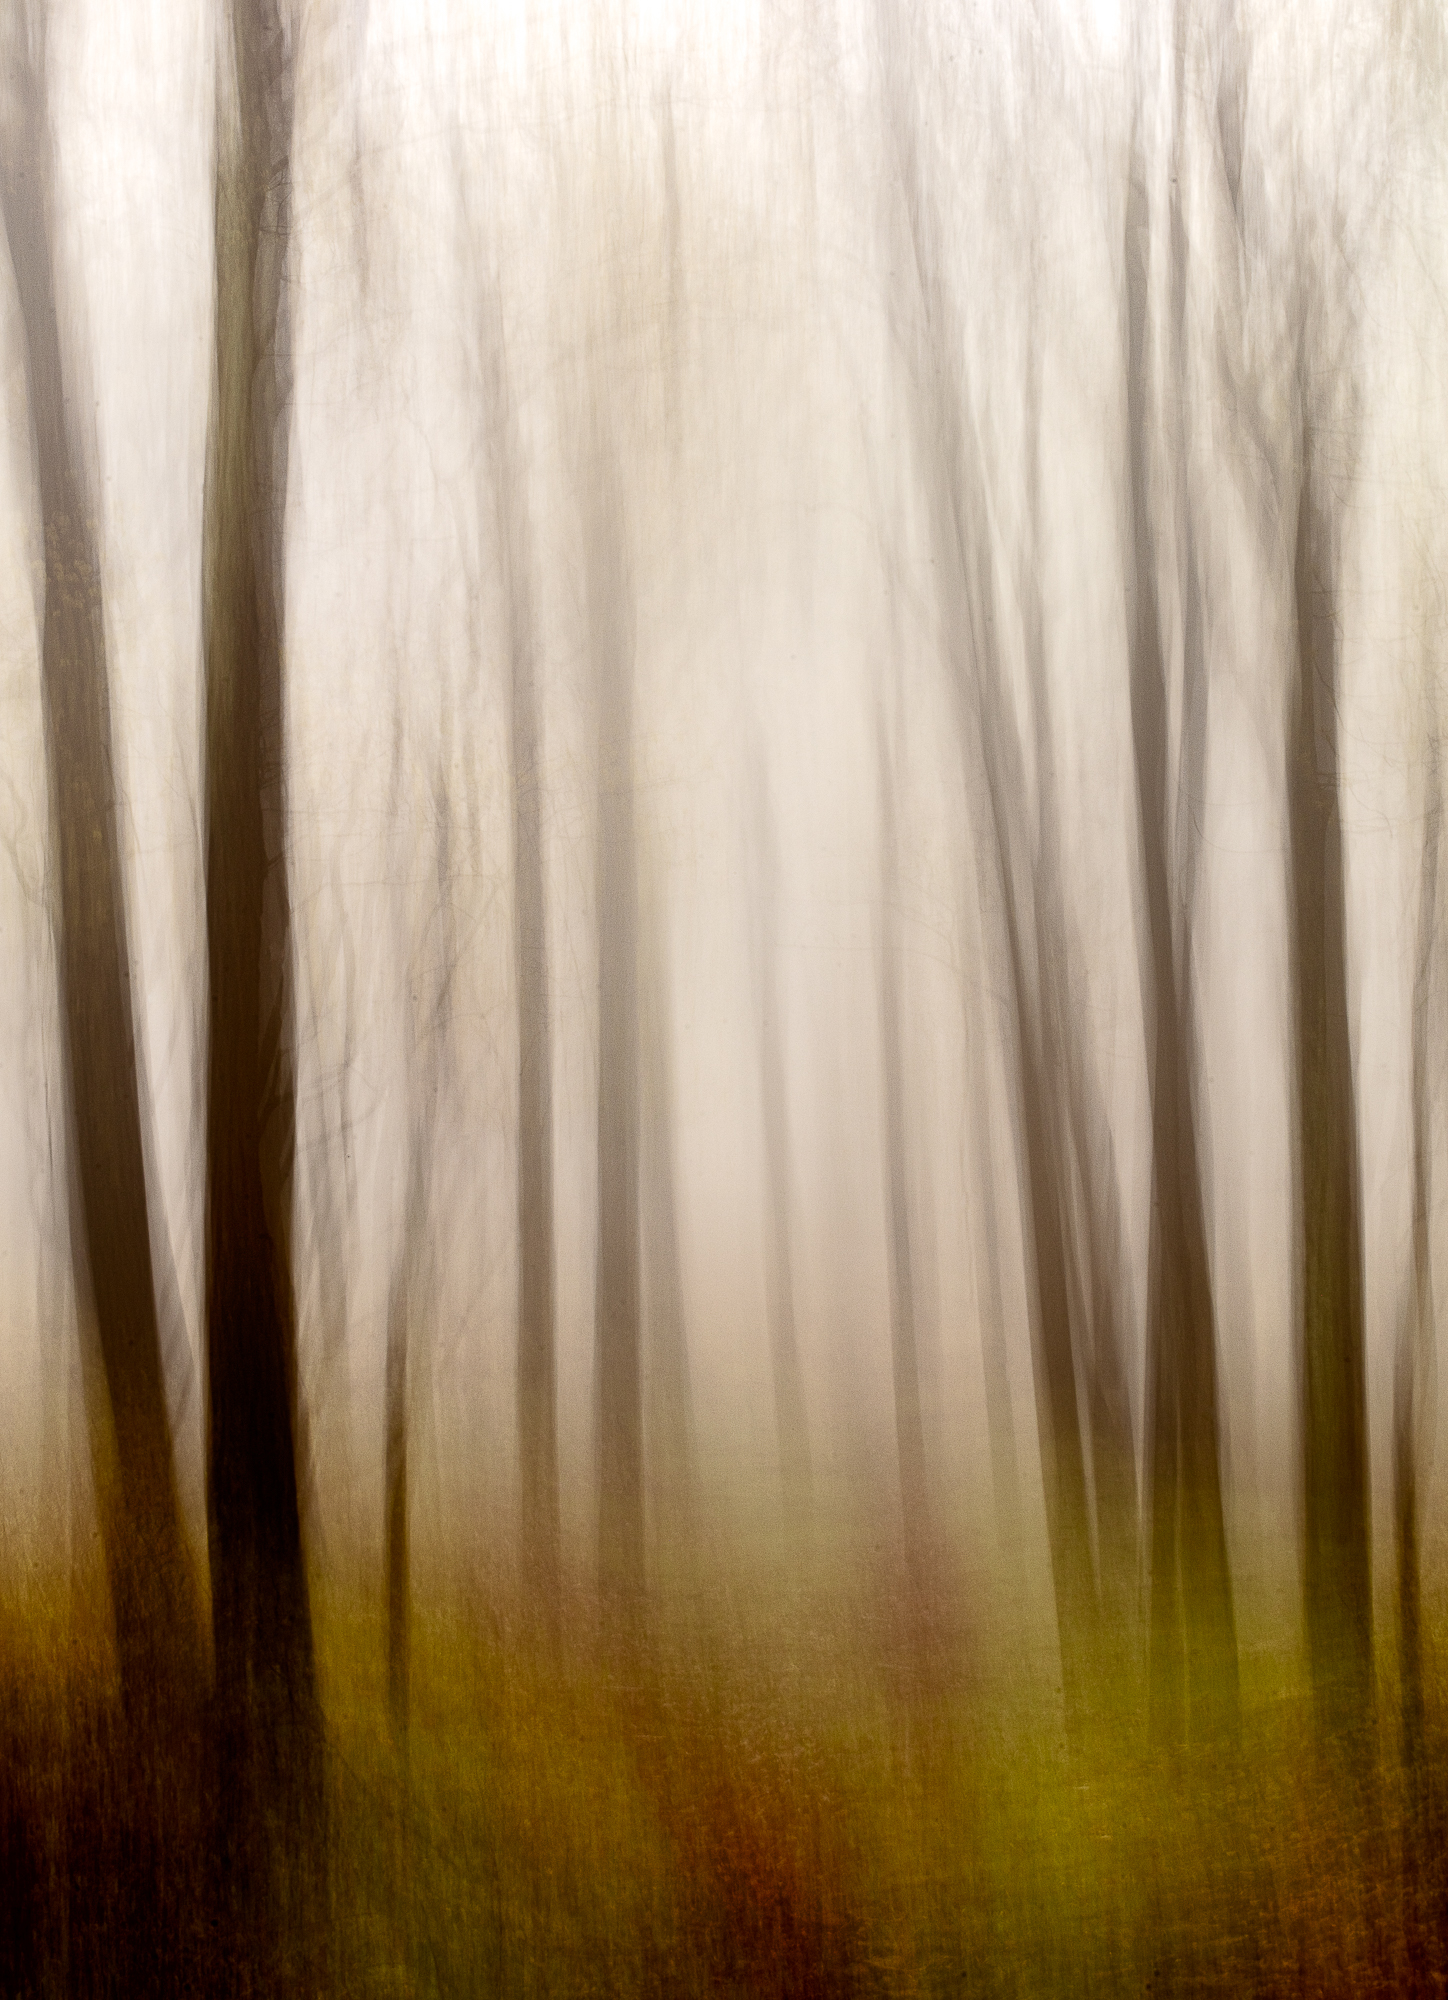 Enchanted Forest #2